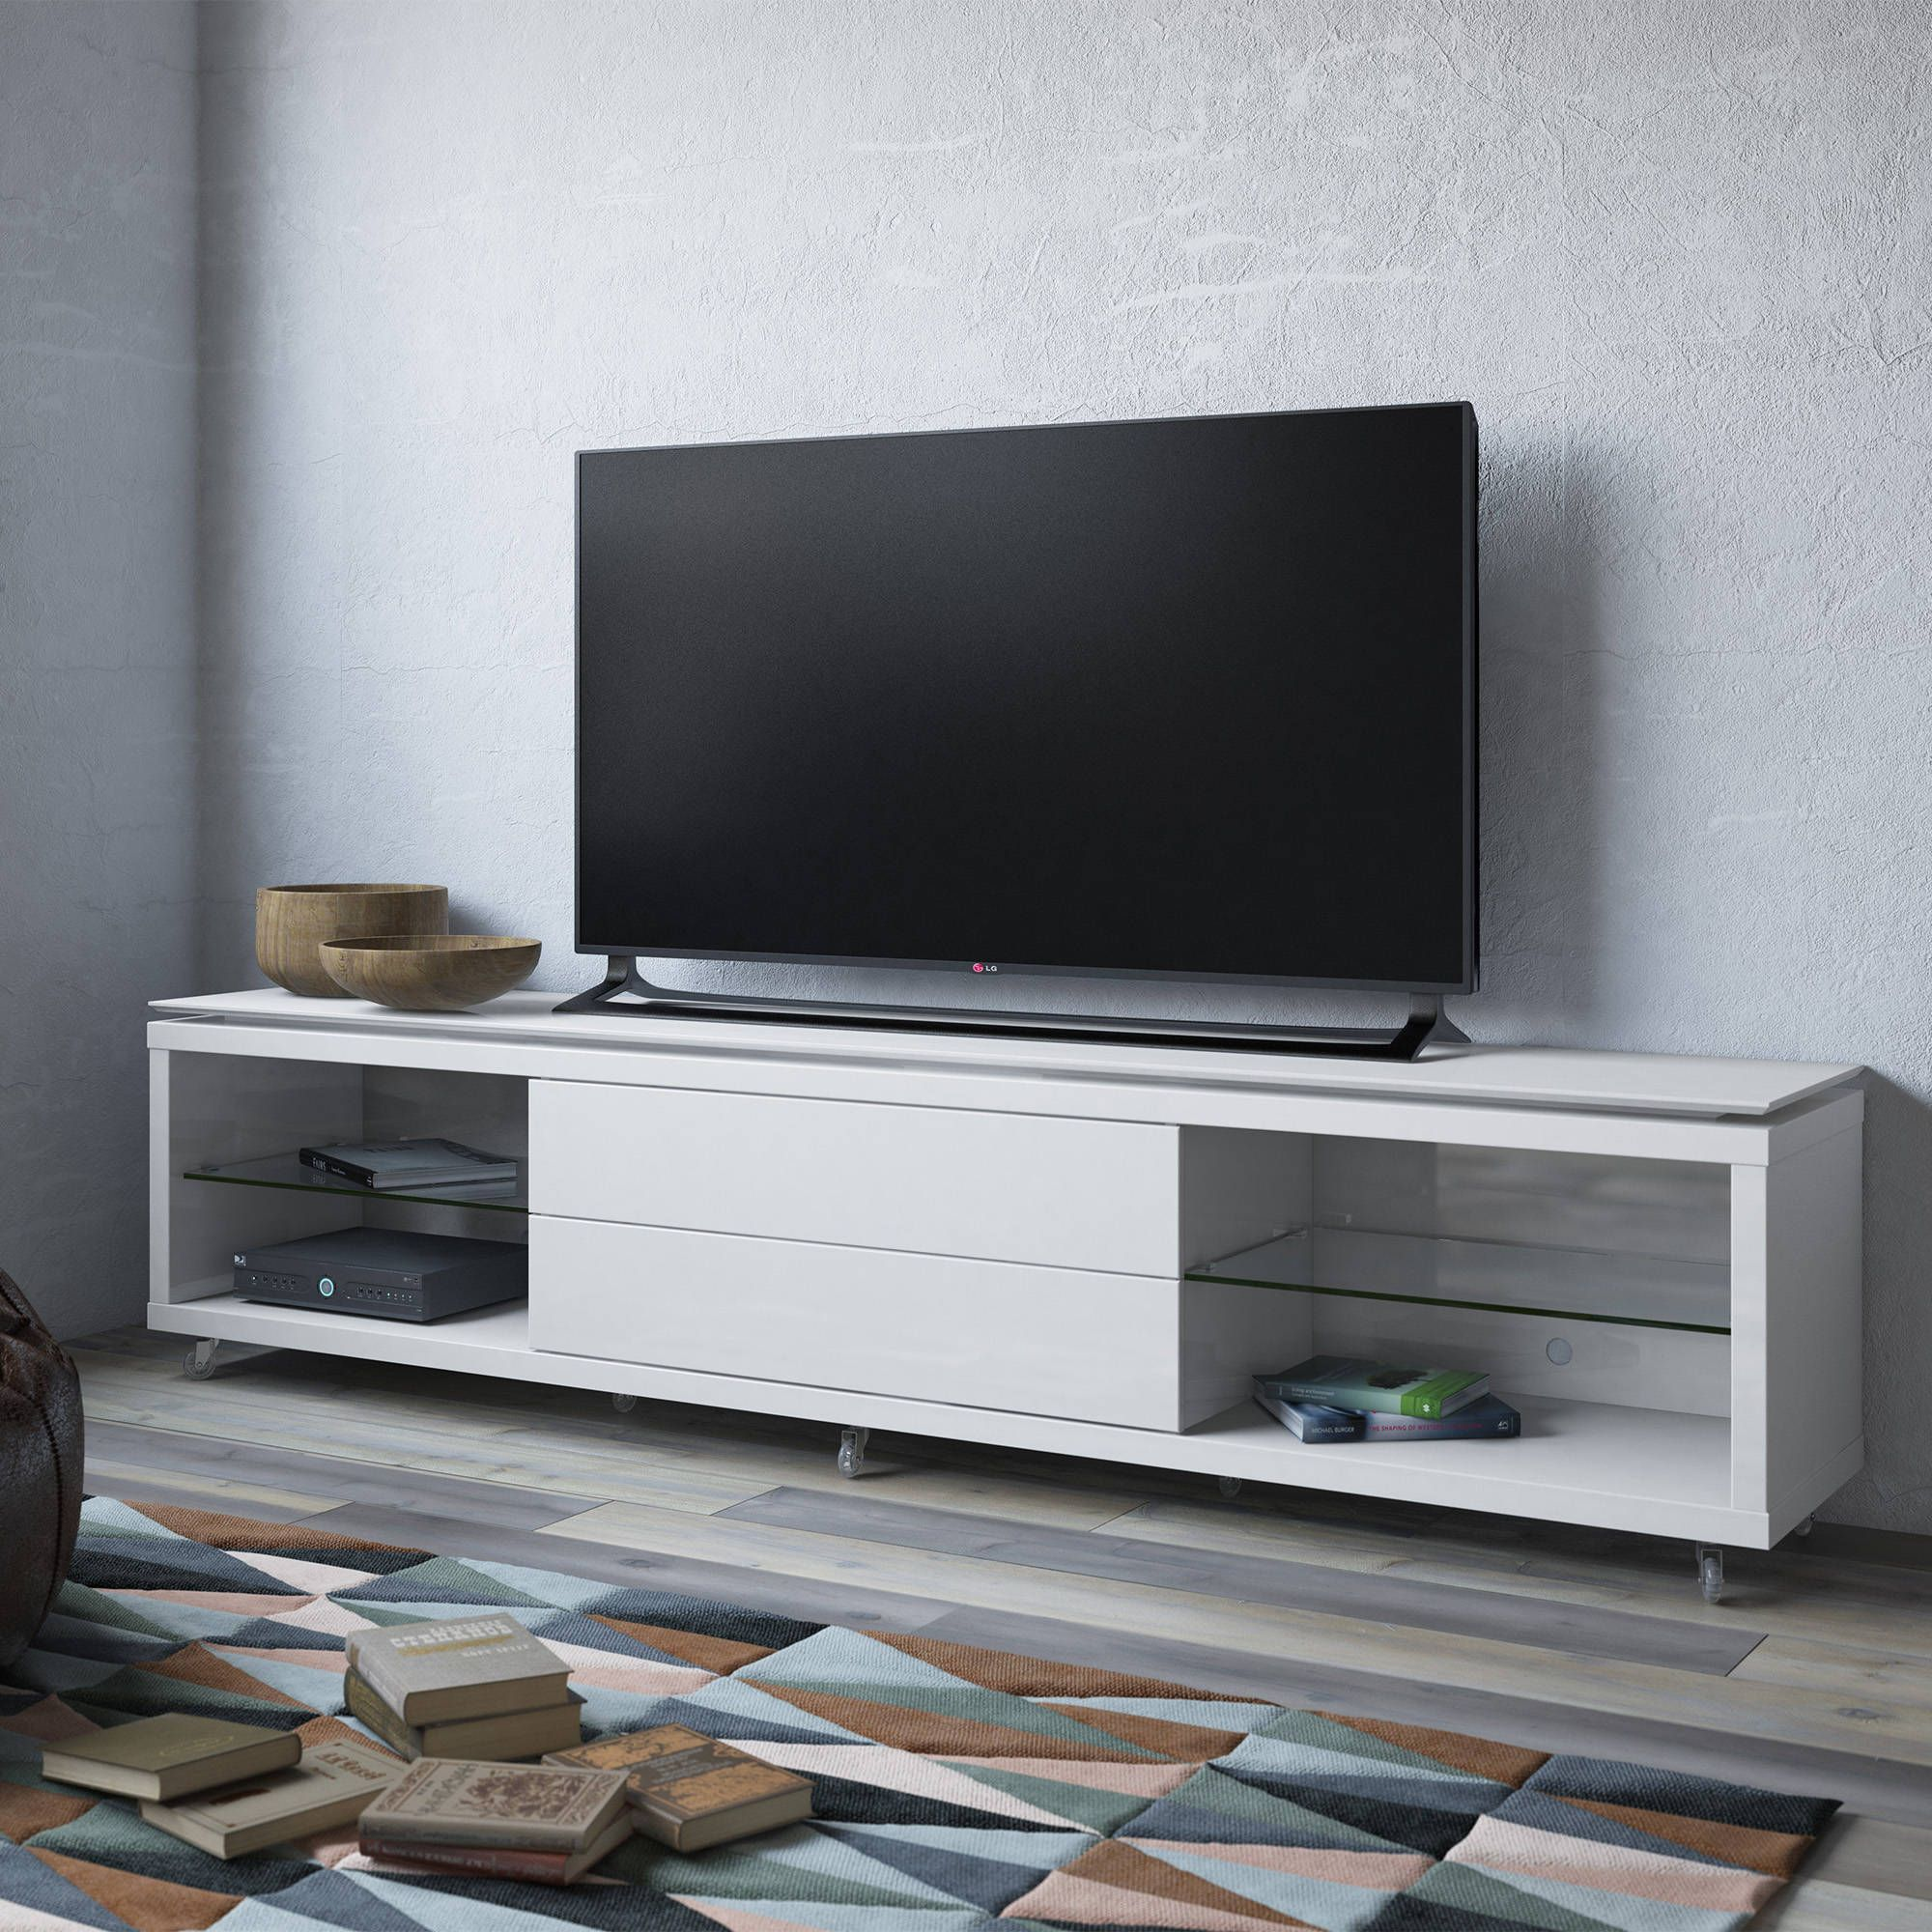 Lincoln 2 4 Contemporary White Gloss MDF Silicone Casters TV Stand